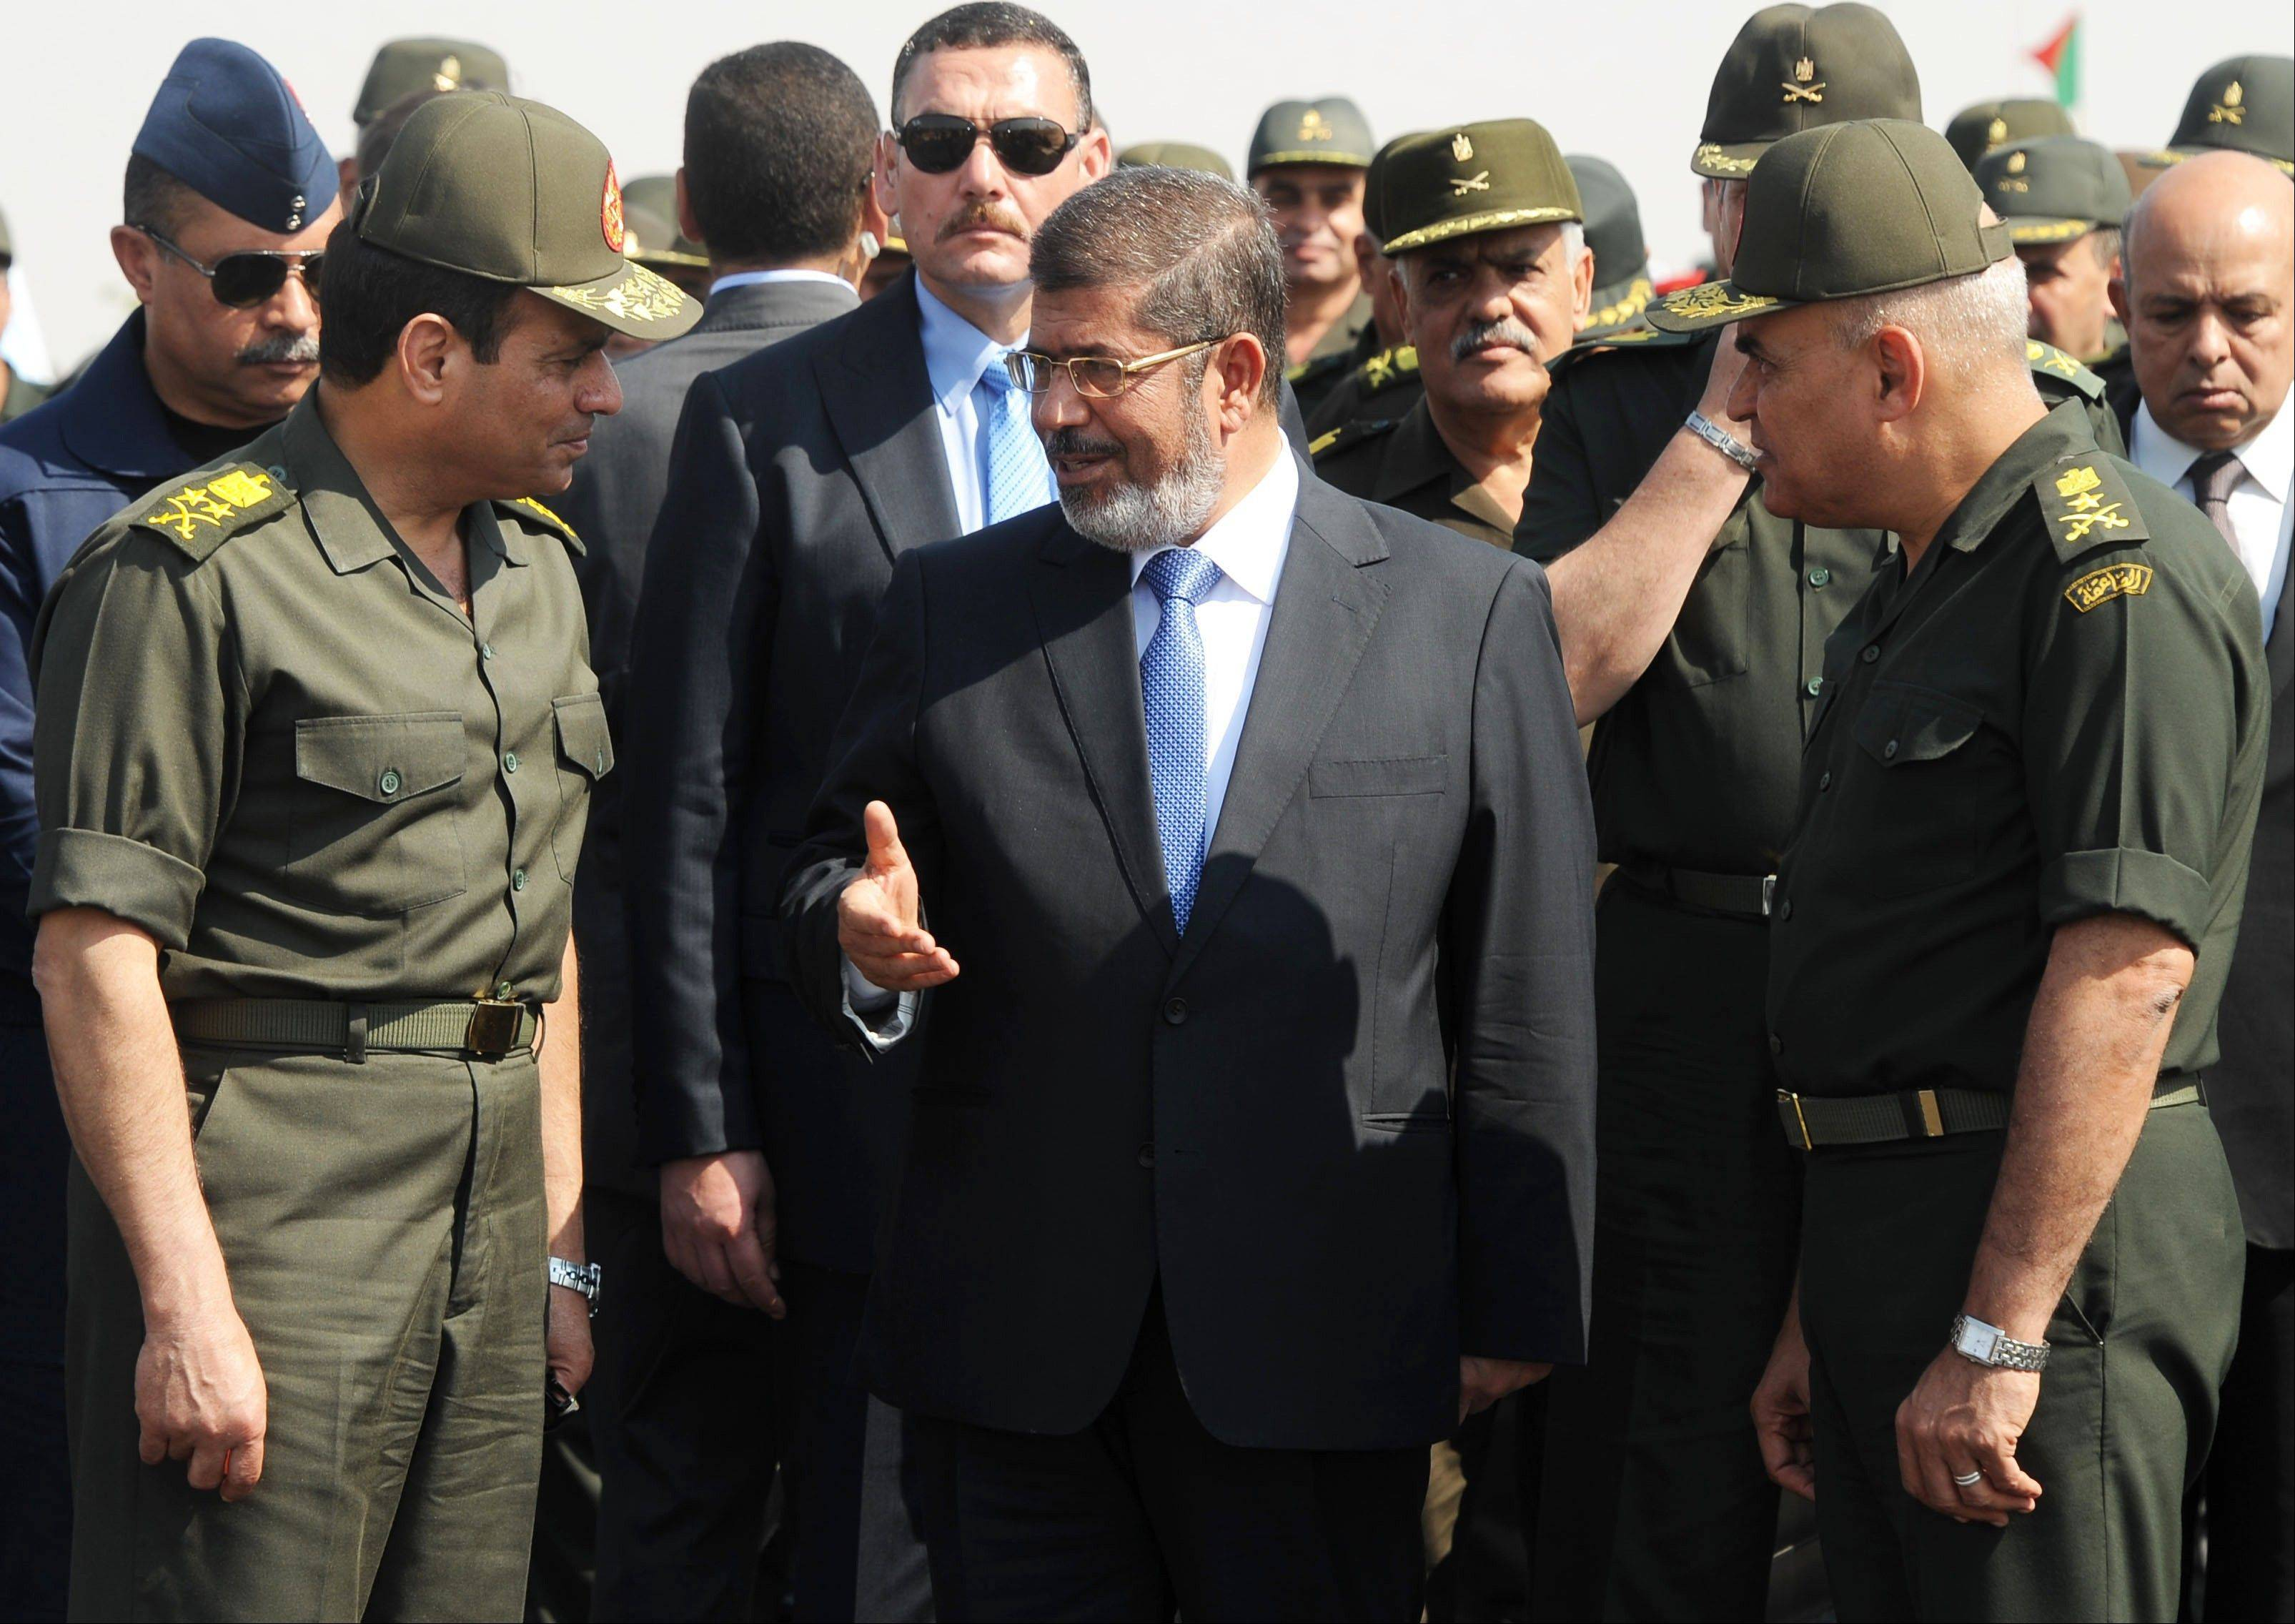 During his year as president, Mohammed Morsi cultivated ties with Islamic radicals, making them a key support for his rule by pardoning dozens of jailed militants, restraining the military from an all-out offensive on jihadis in Sinai and giving their hard-line sheiks a platform to spread their rhetoric.